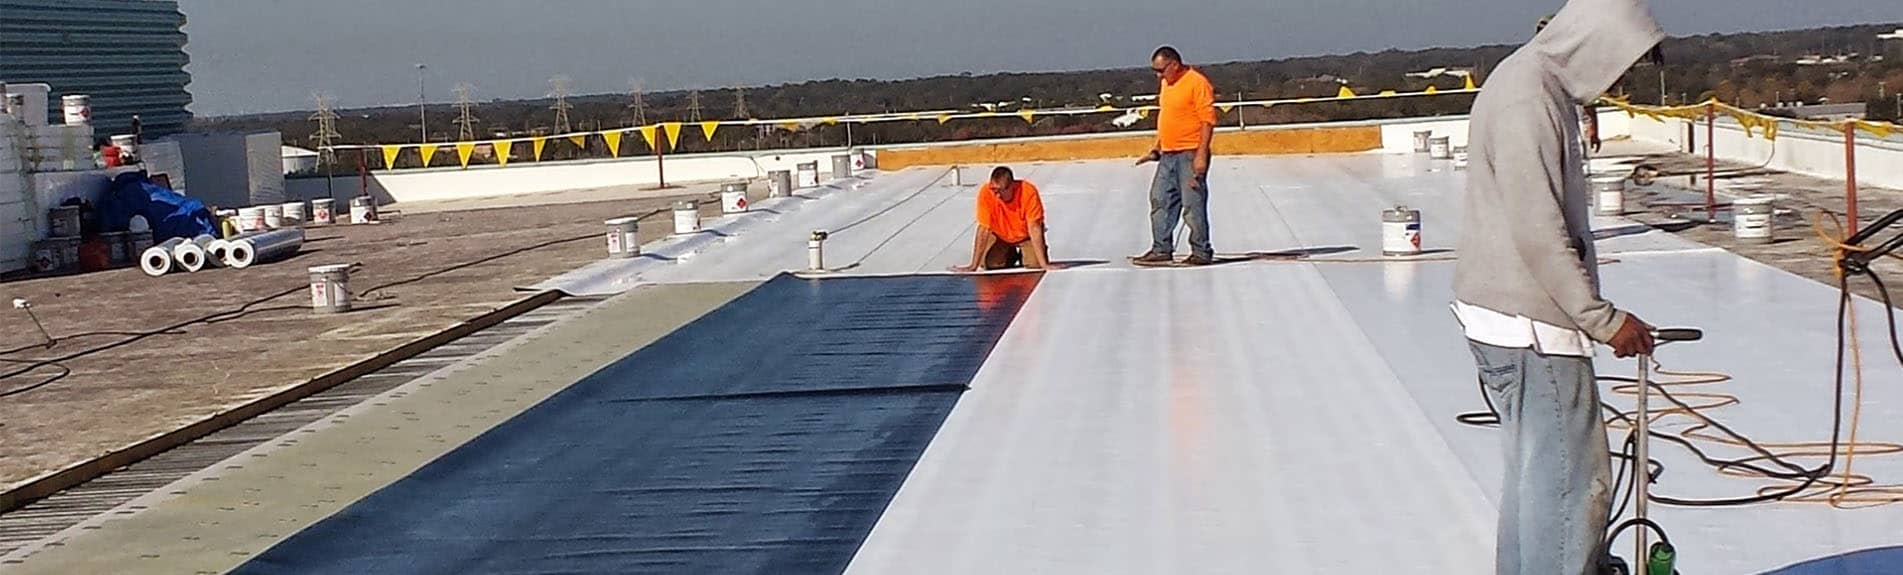 Baltimore Roofing Company, Roofing Contractor and Roofer